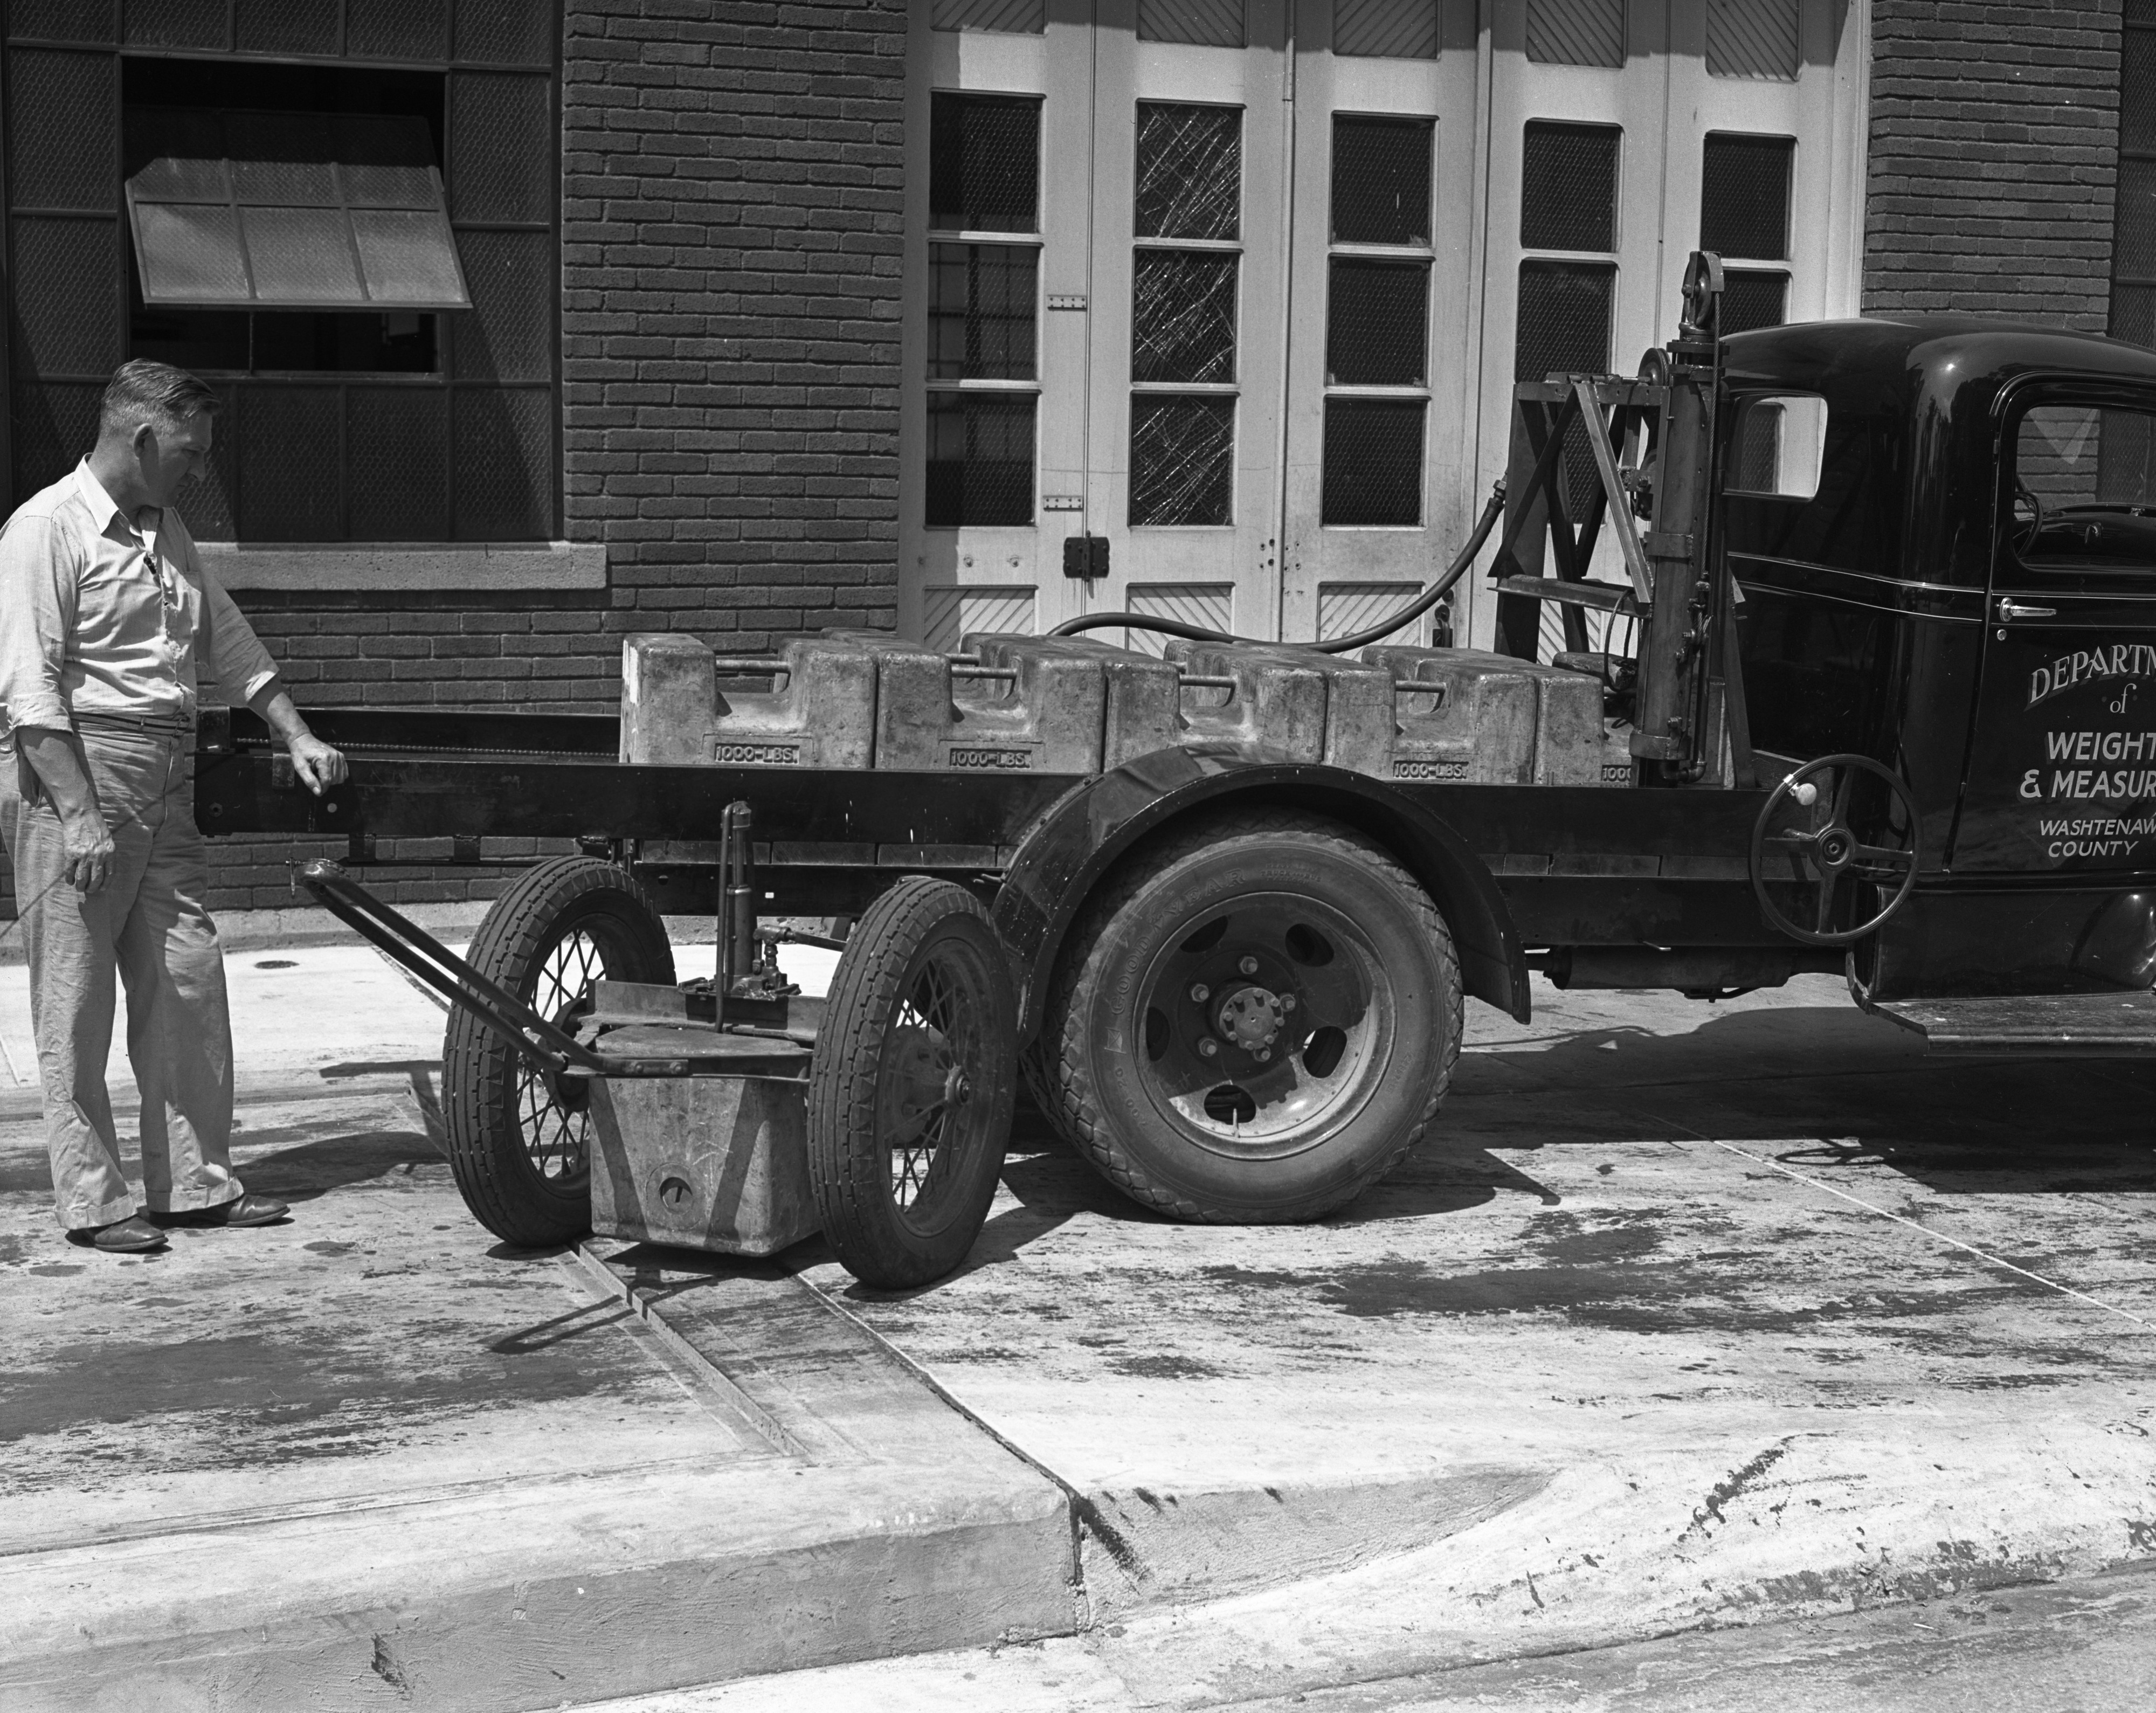 George Smith with Washtenaw County's Weighing Truck, August 1939 image